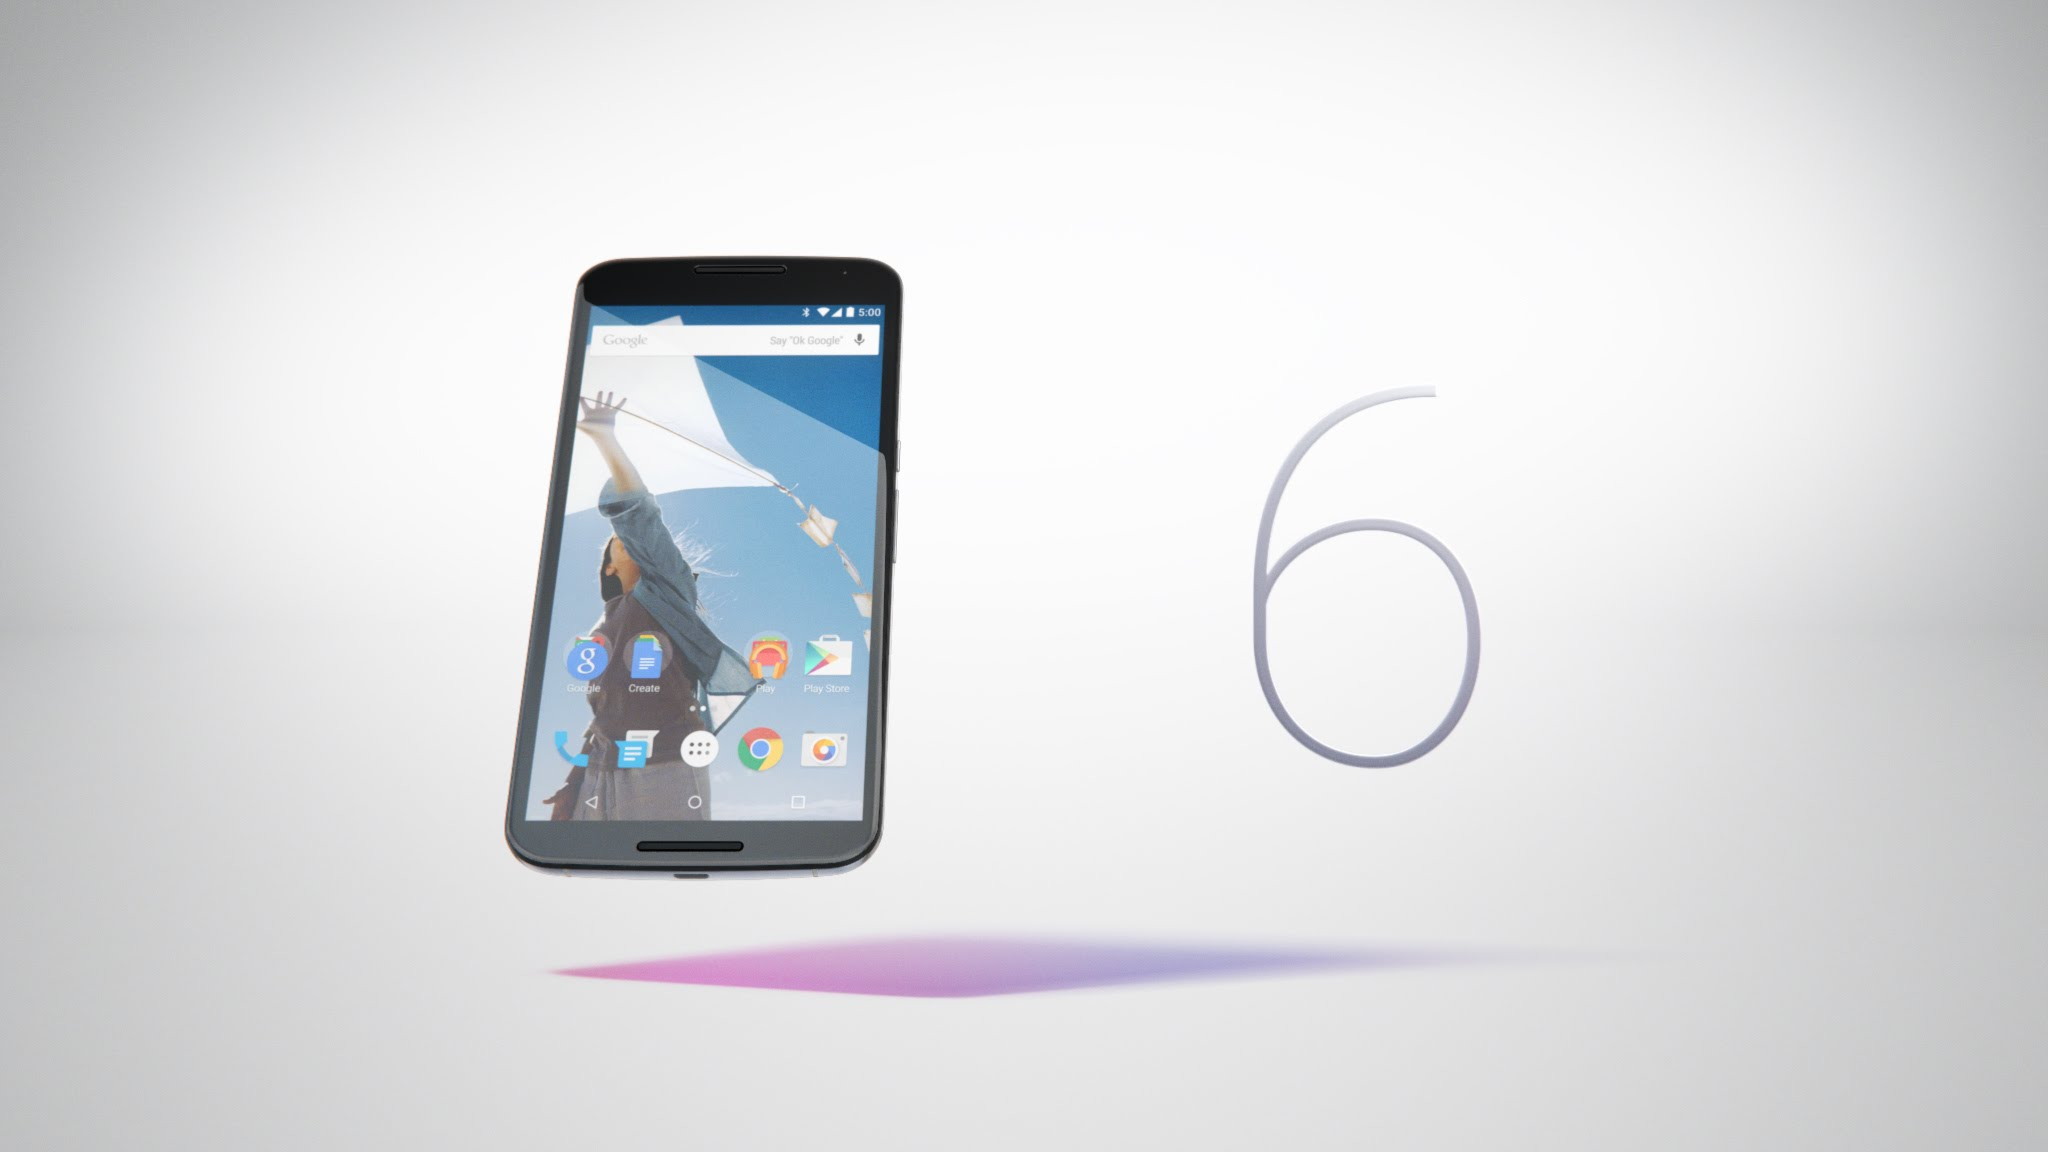 Photo of Nexus 6: Space to explore